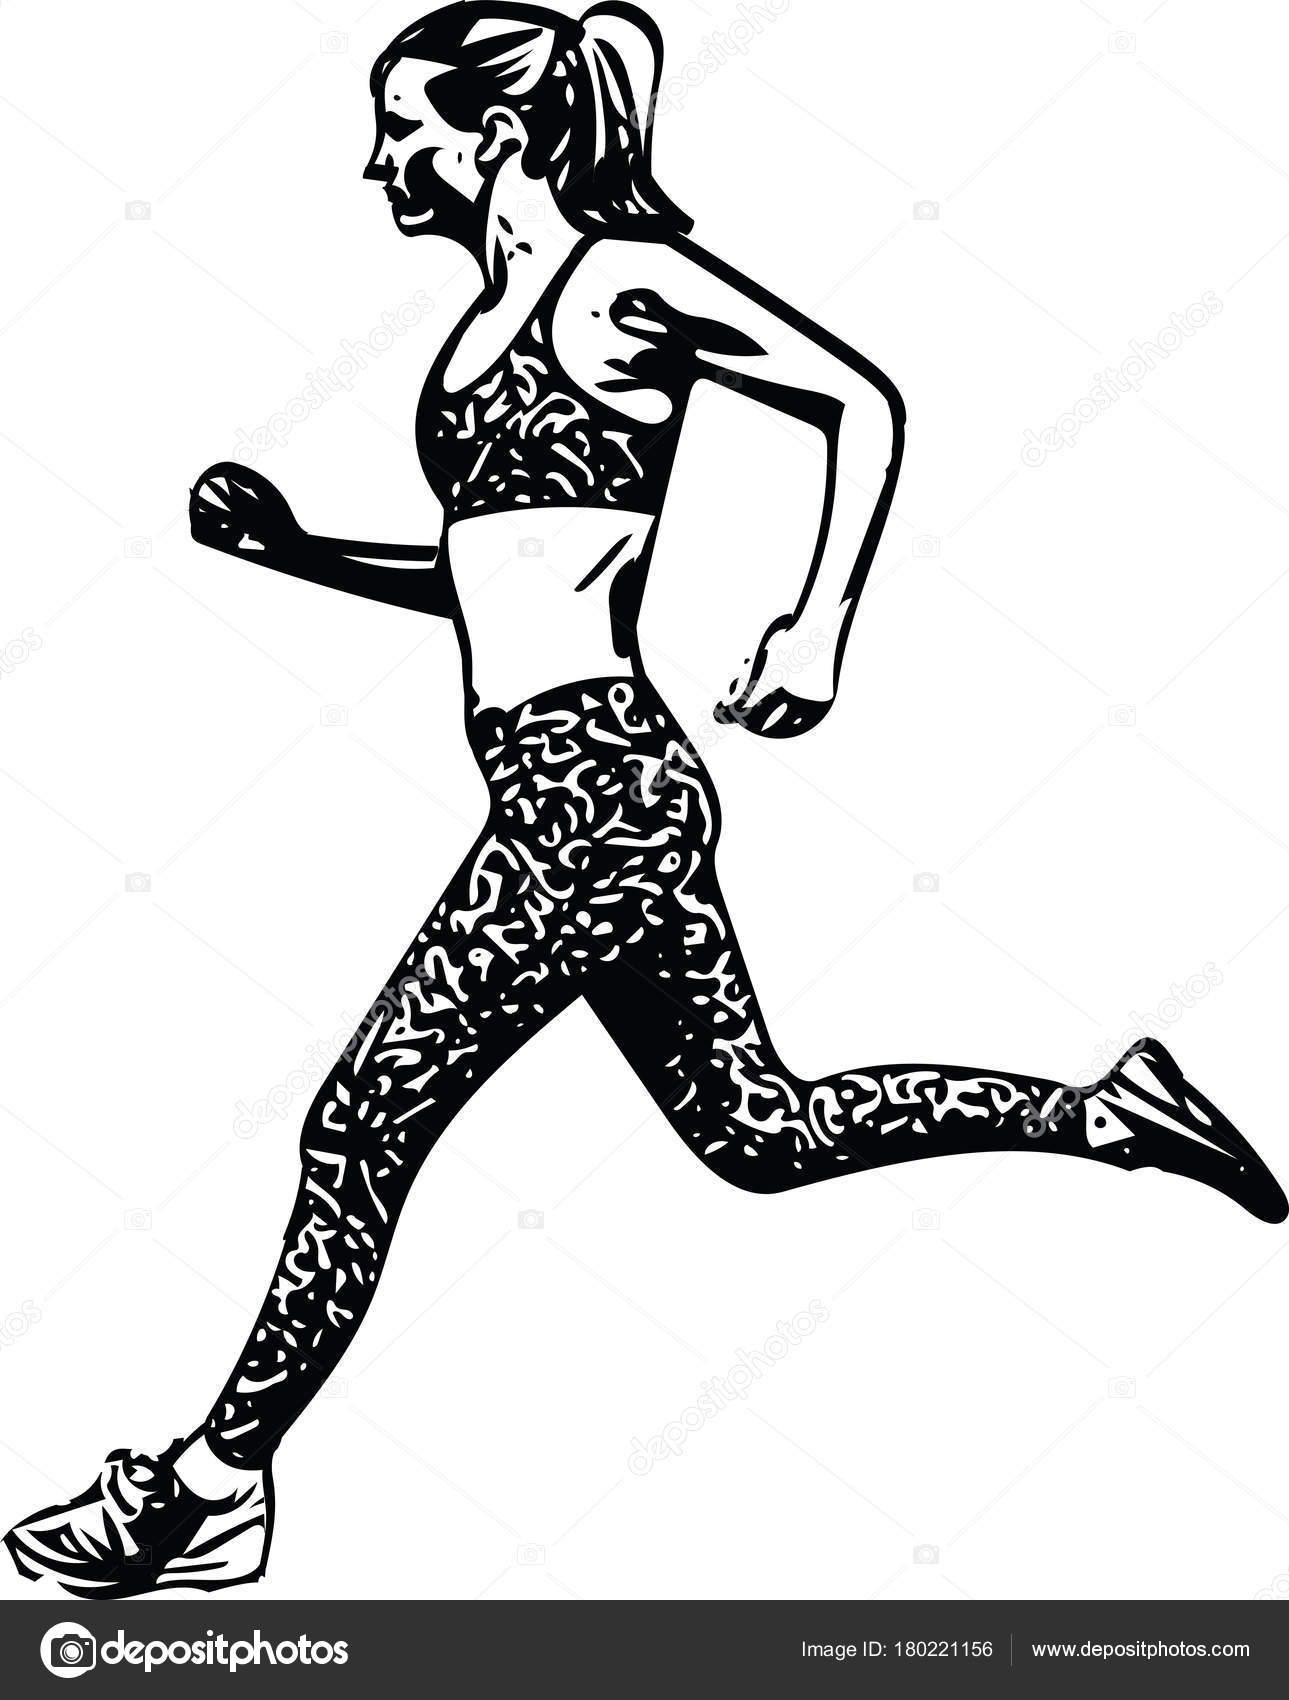 1289x1700 Drawing Of Running Woman Silhouette Stock Vector Aroas